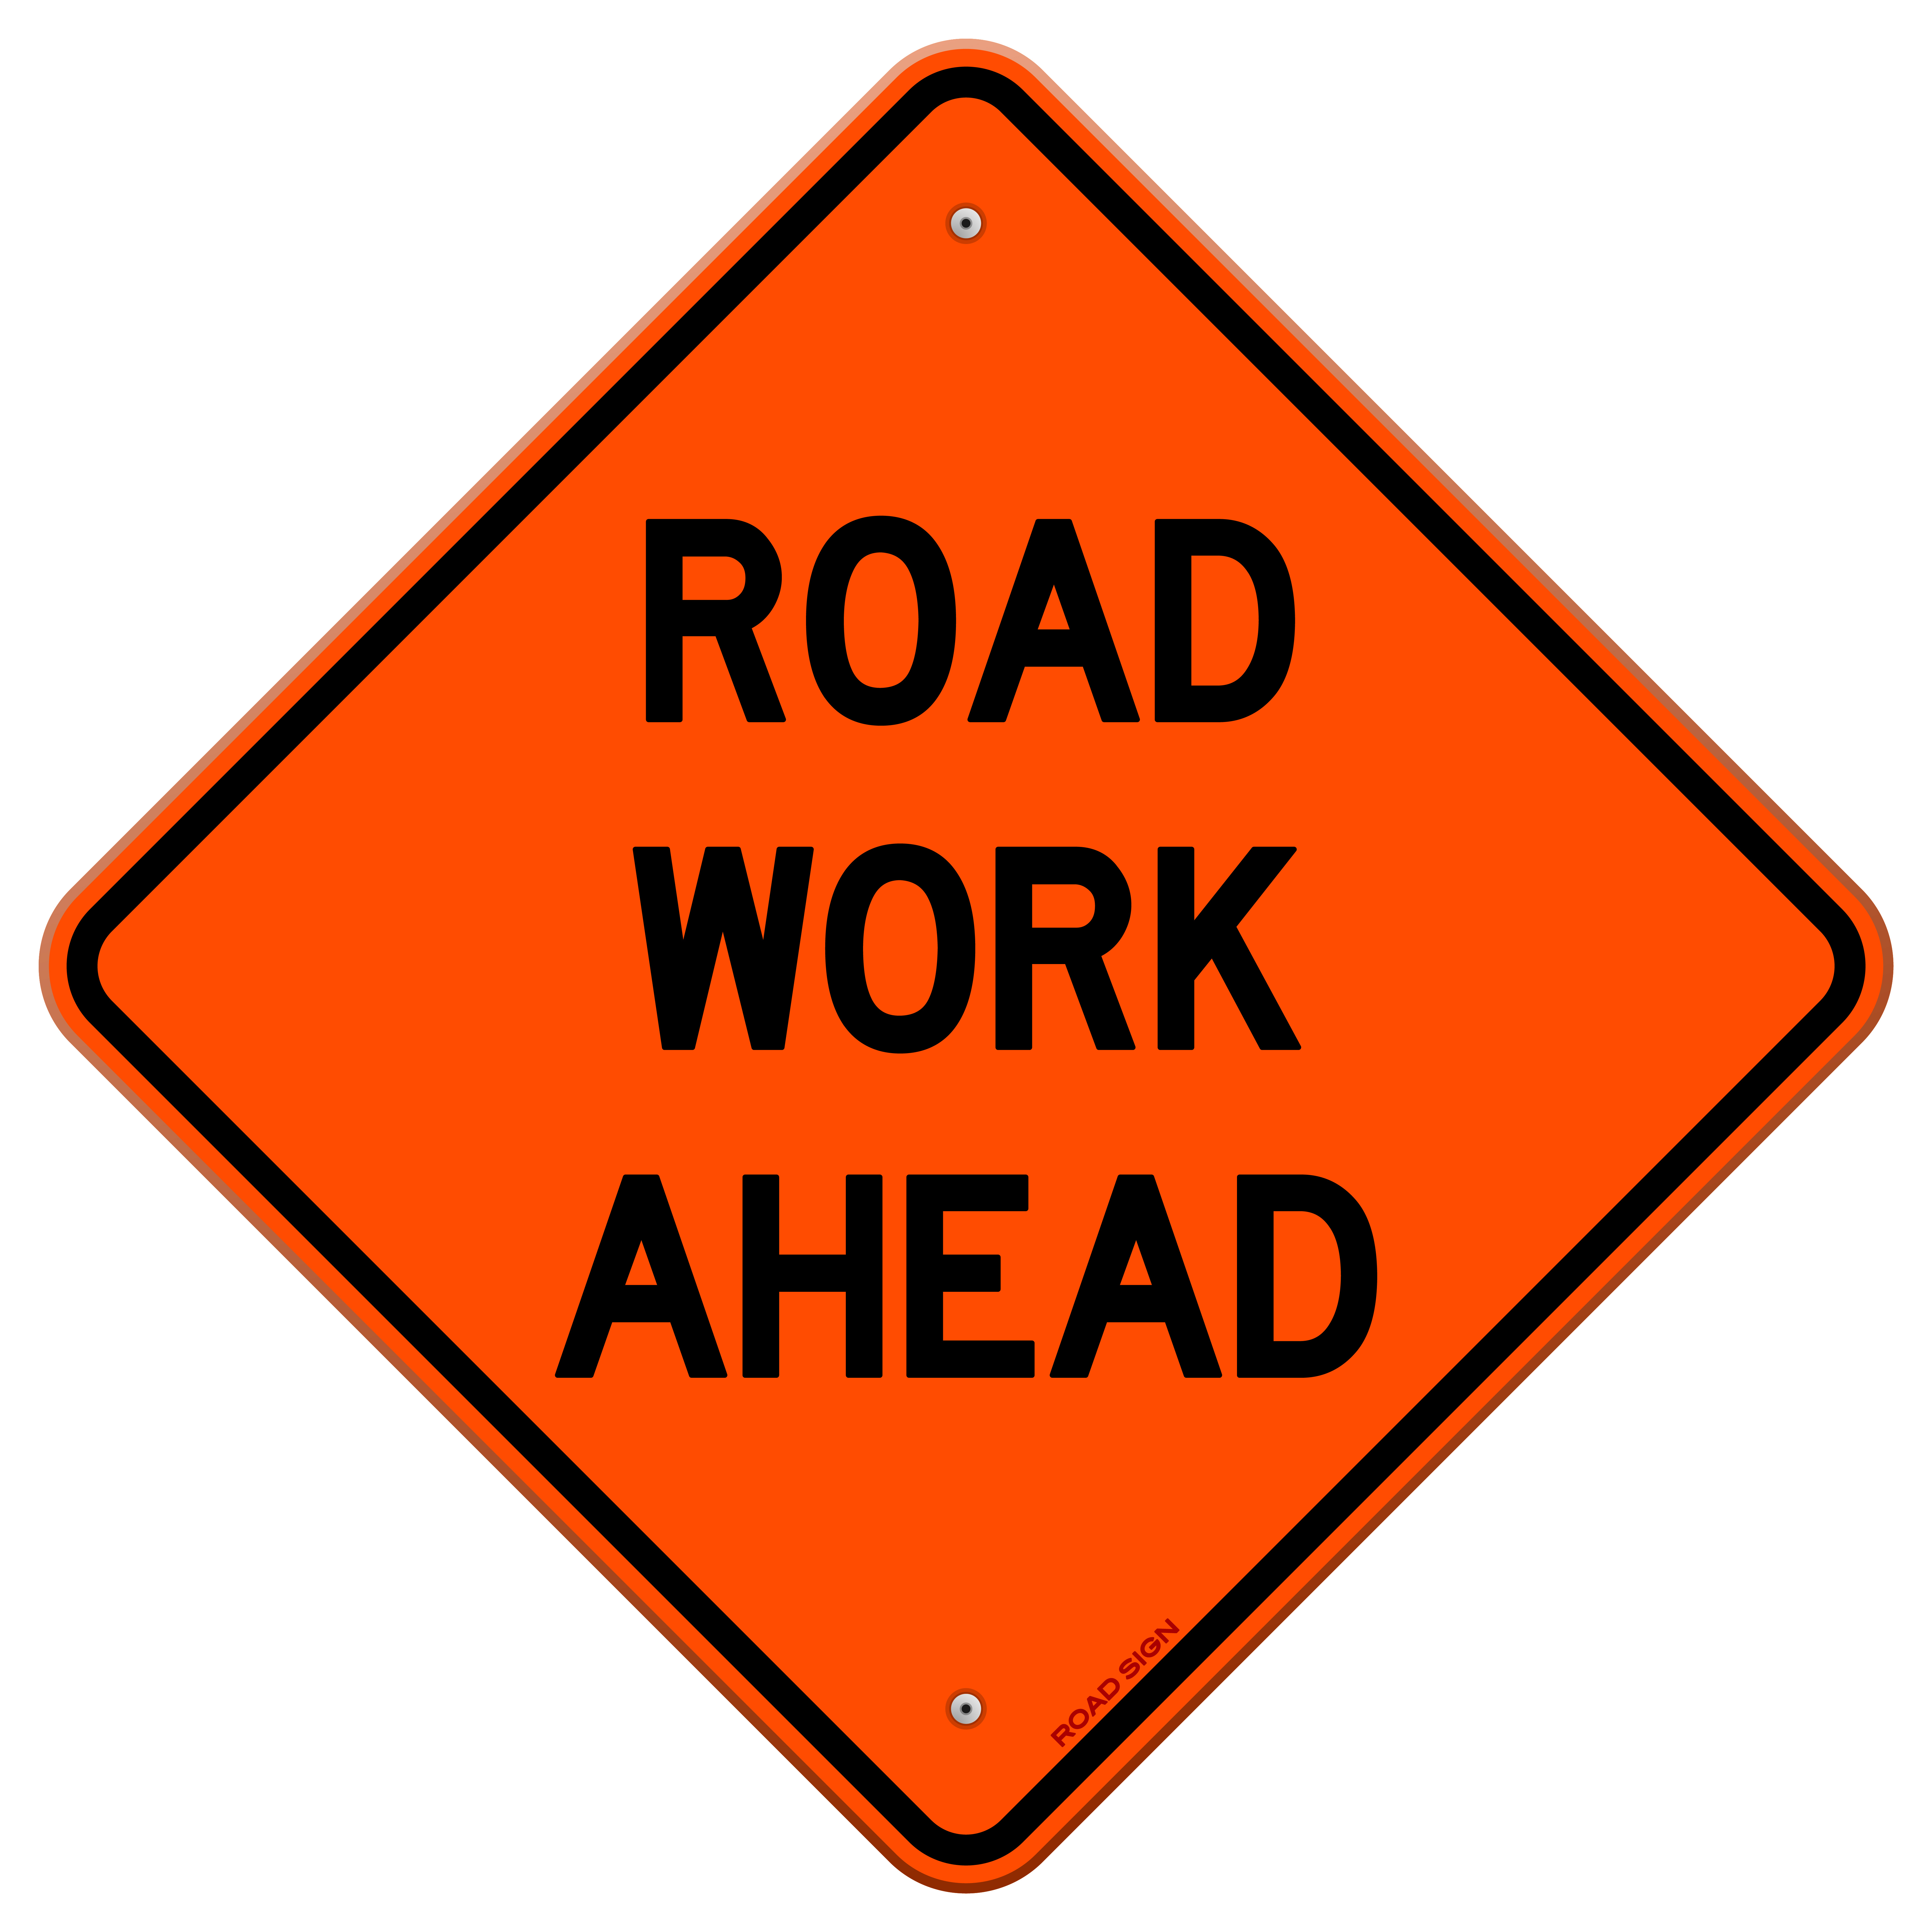 road work ahead sign shutterstock_115712851